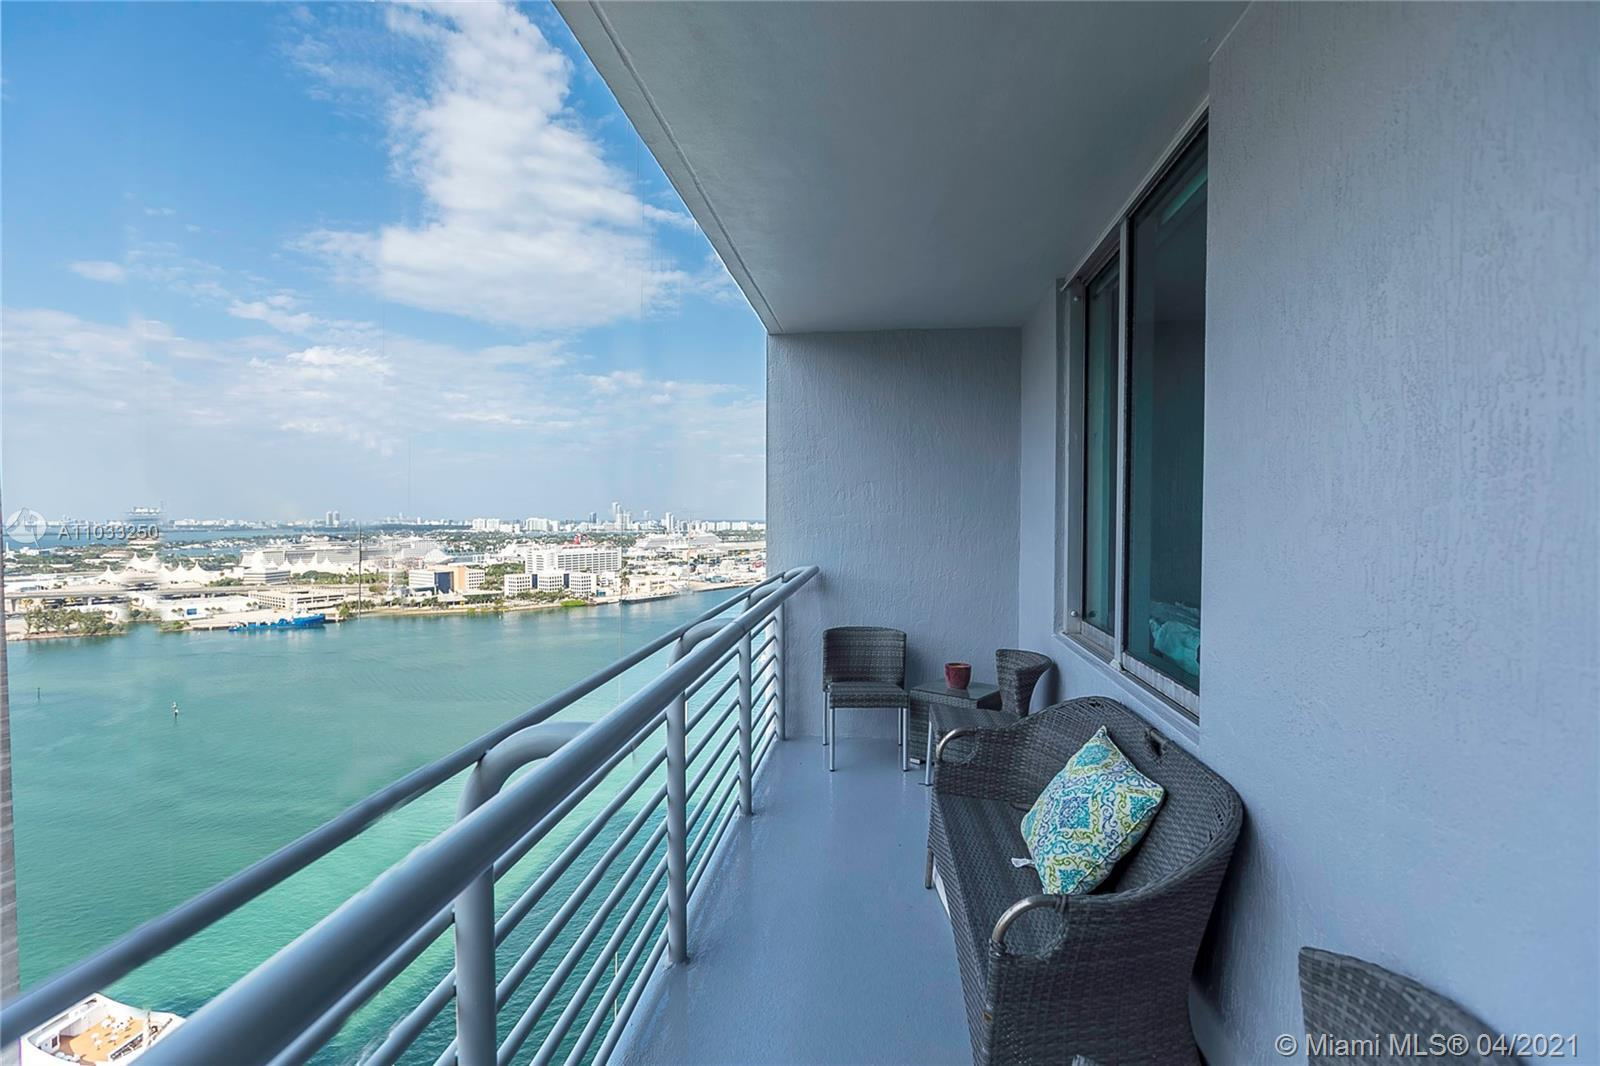 Beautiful 1bd 1bth condo with direct views of Biscayne Bay, Bayfront Park and Miami Skyline. Condo i